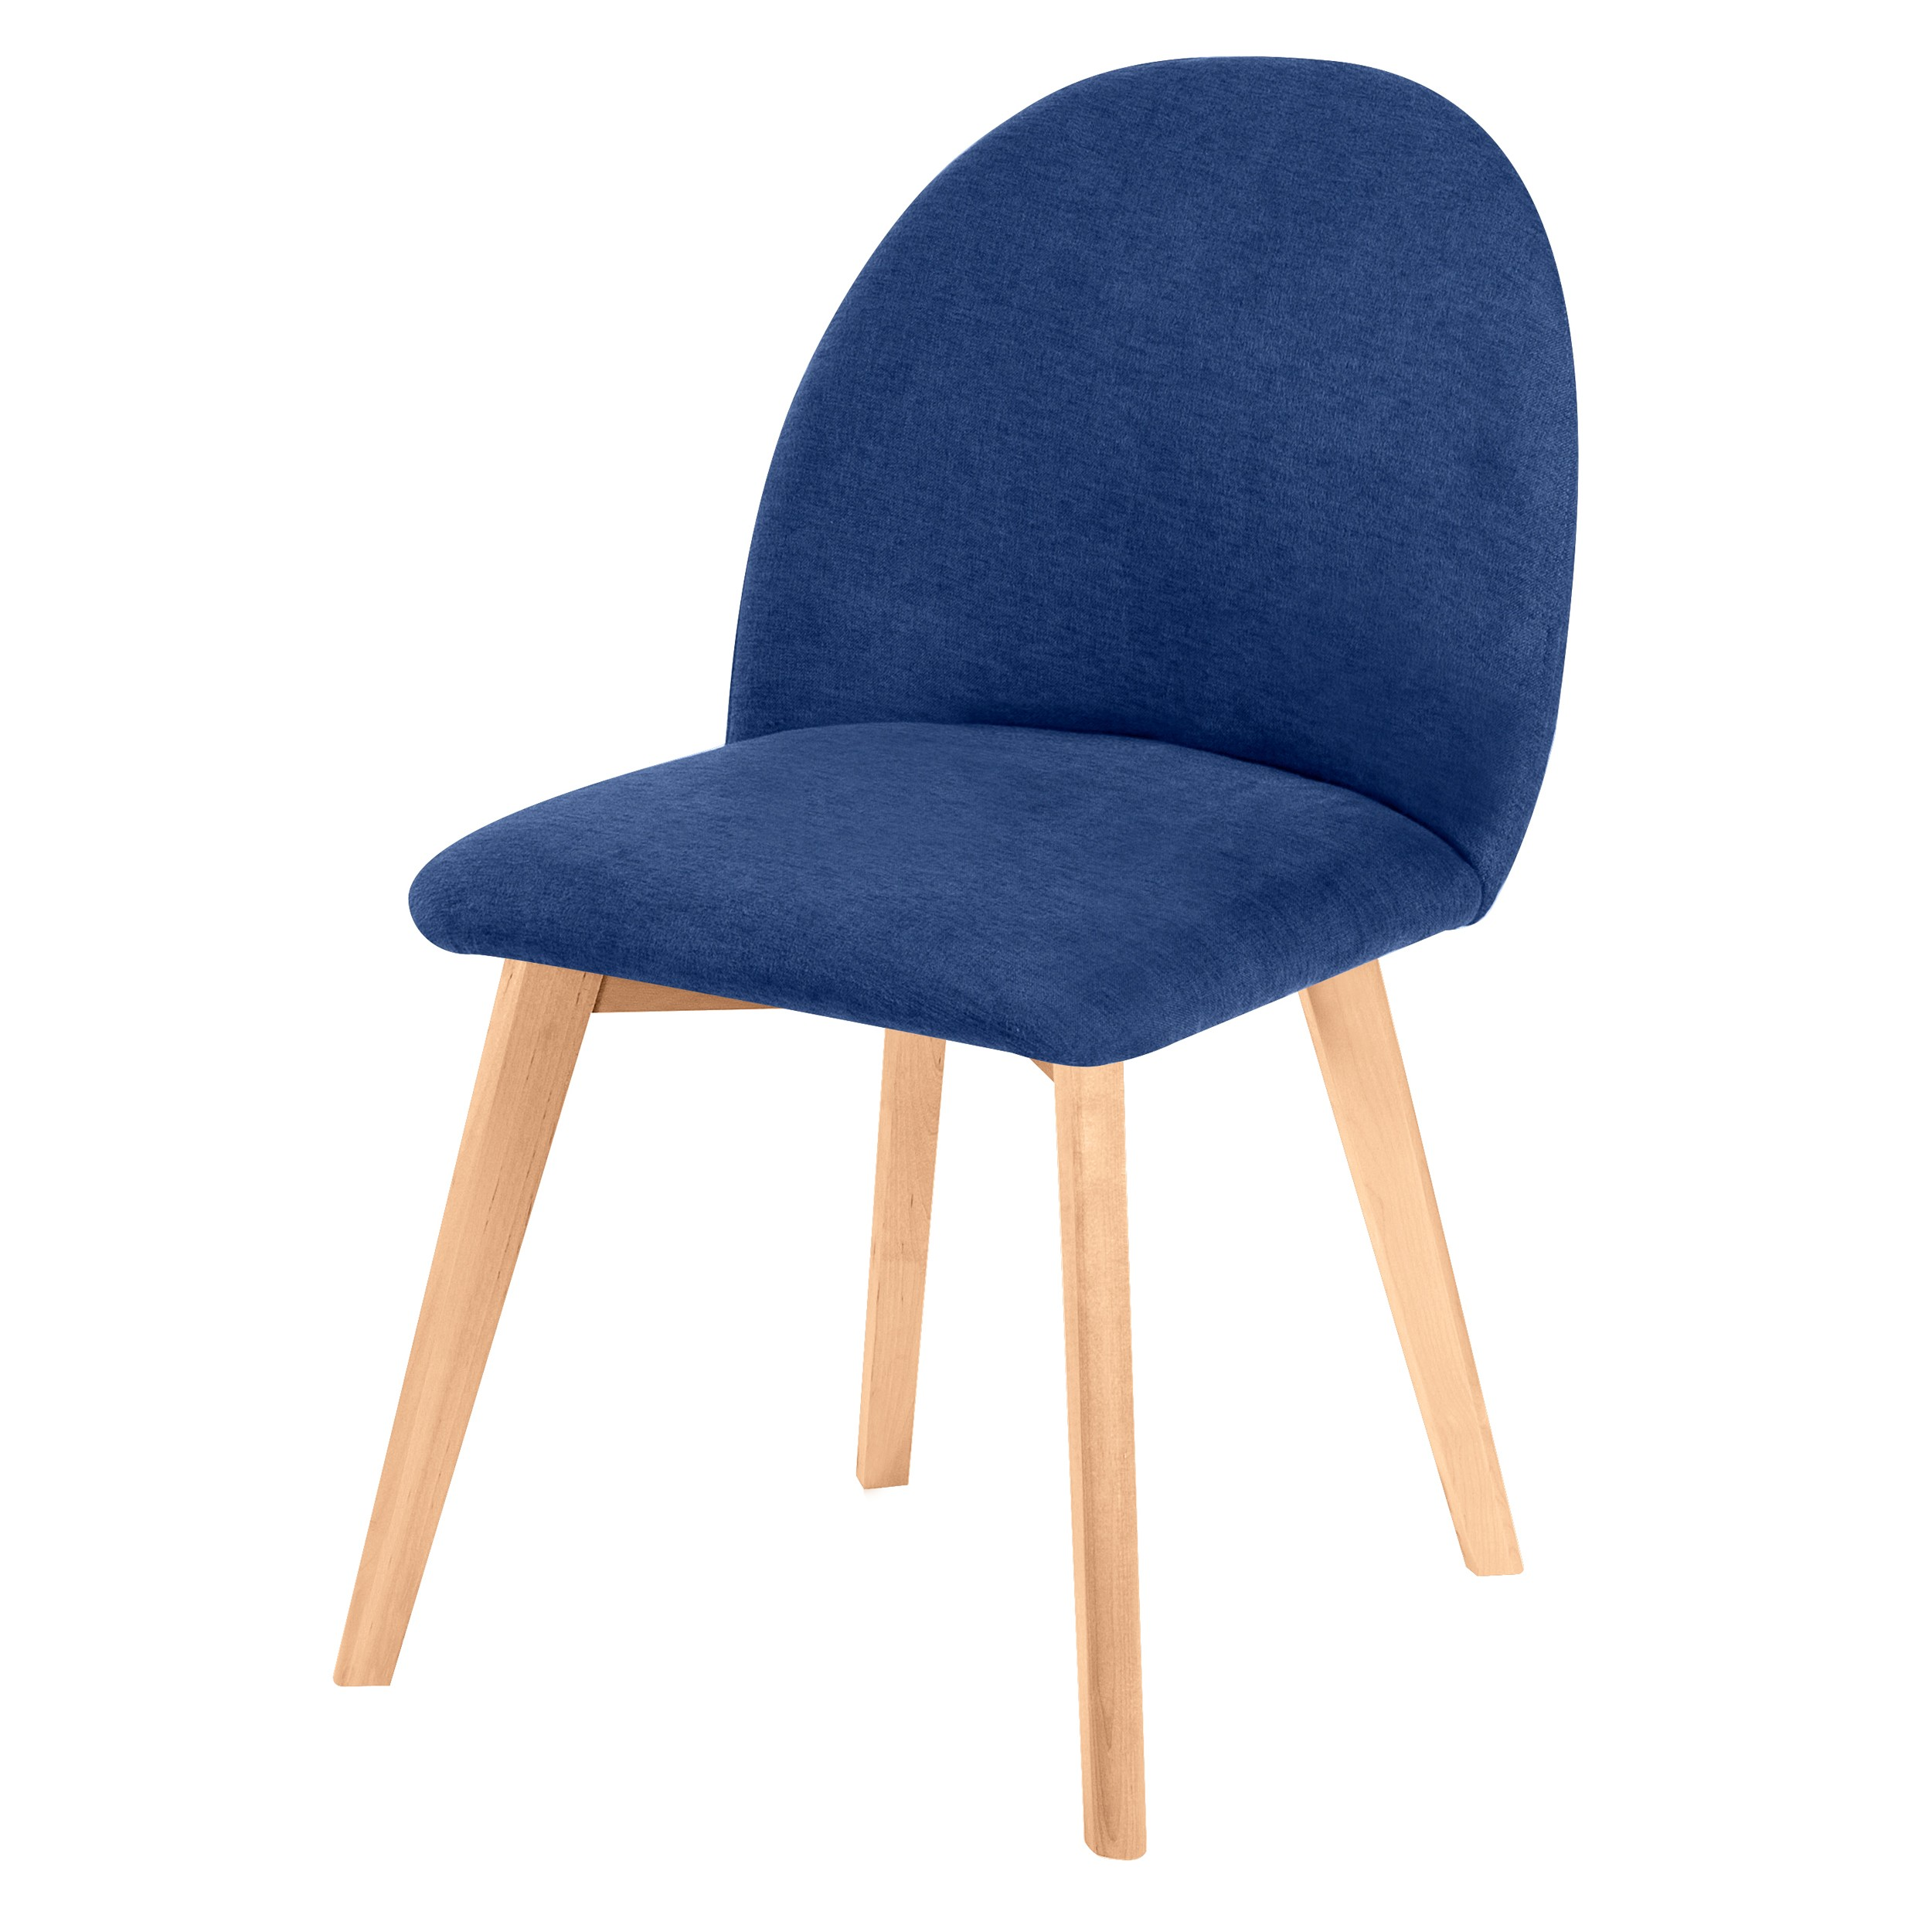 Achat de chaises awesome chaise salle a manger pas cher for Achat chaise design